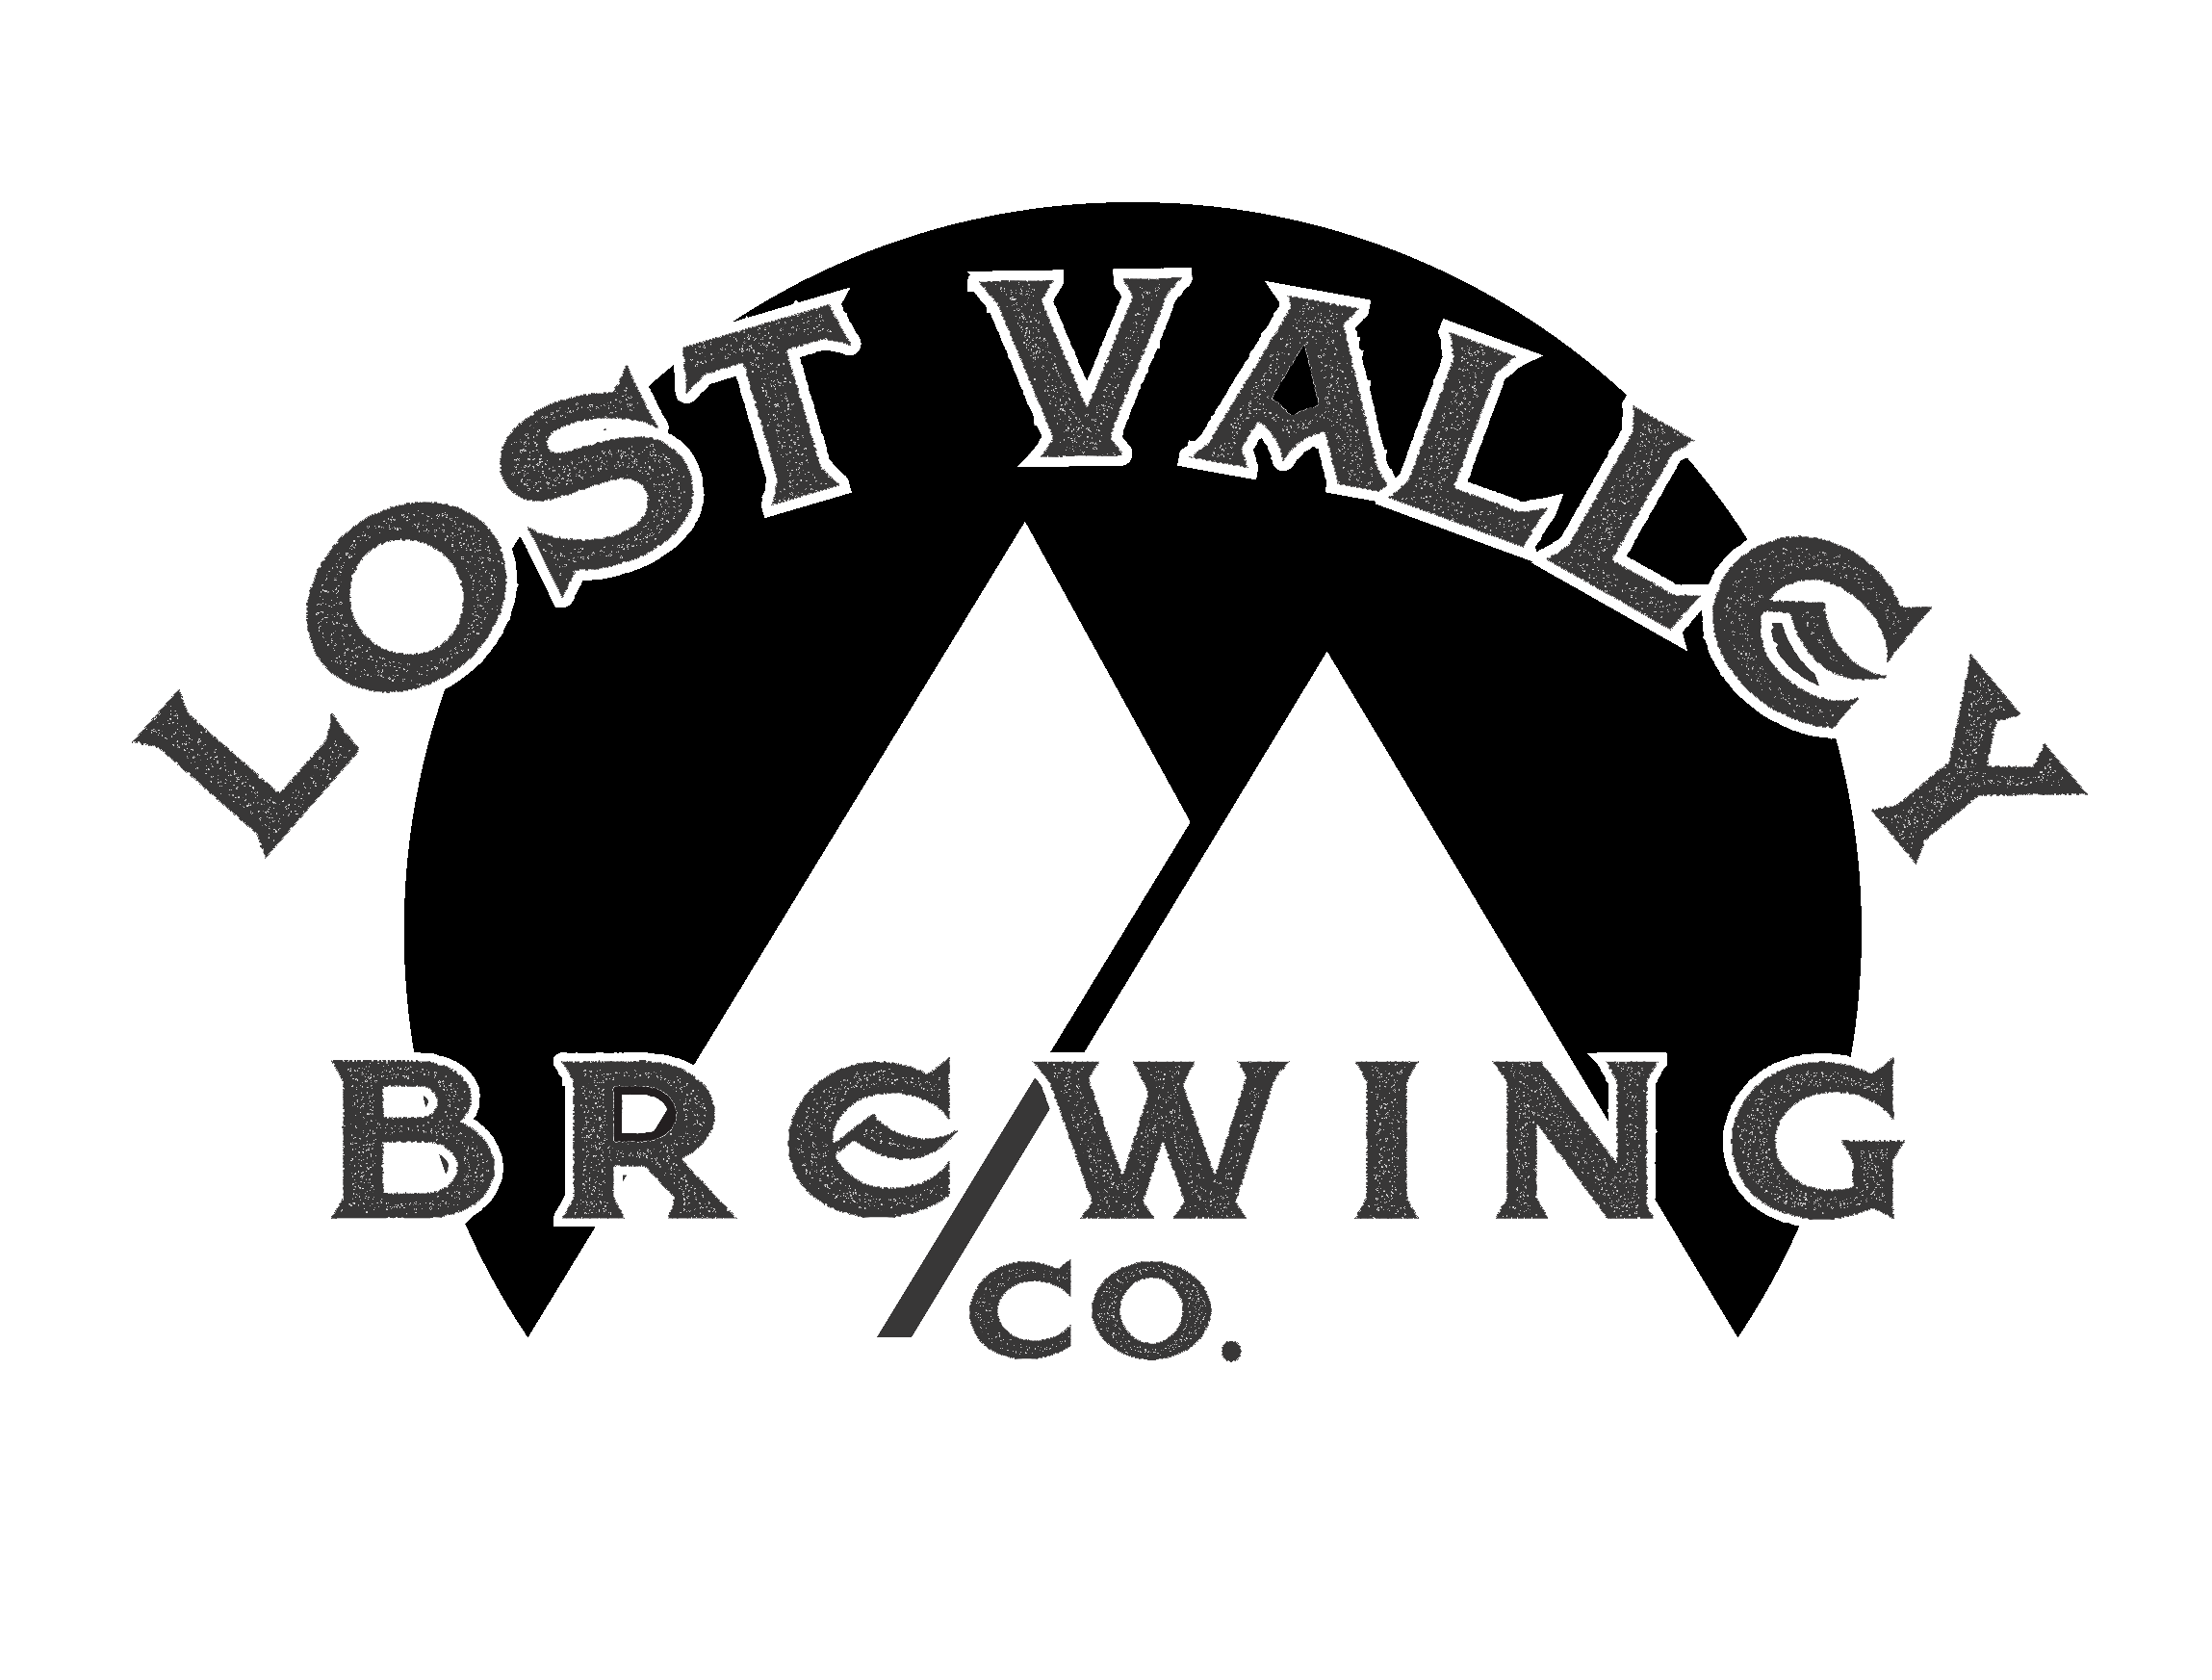 Lost Valley Brewing Co.